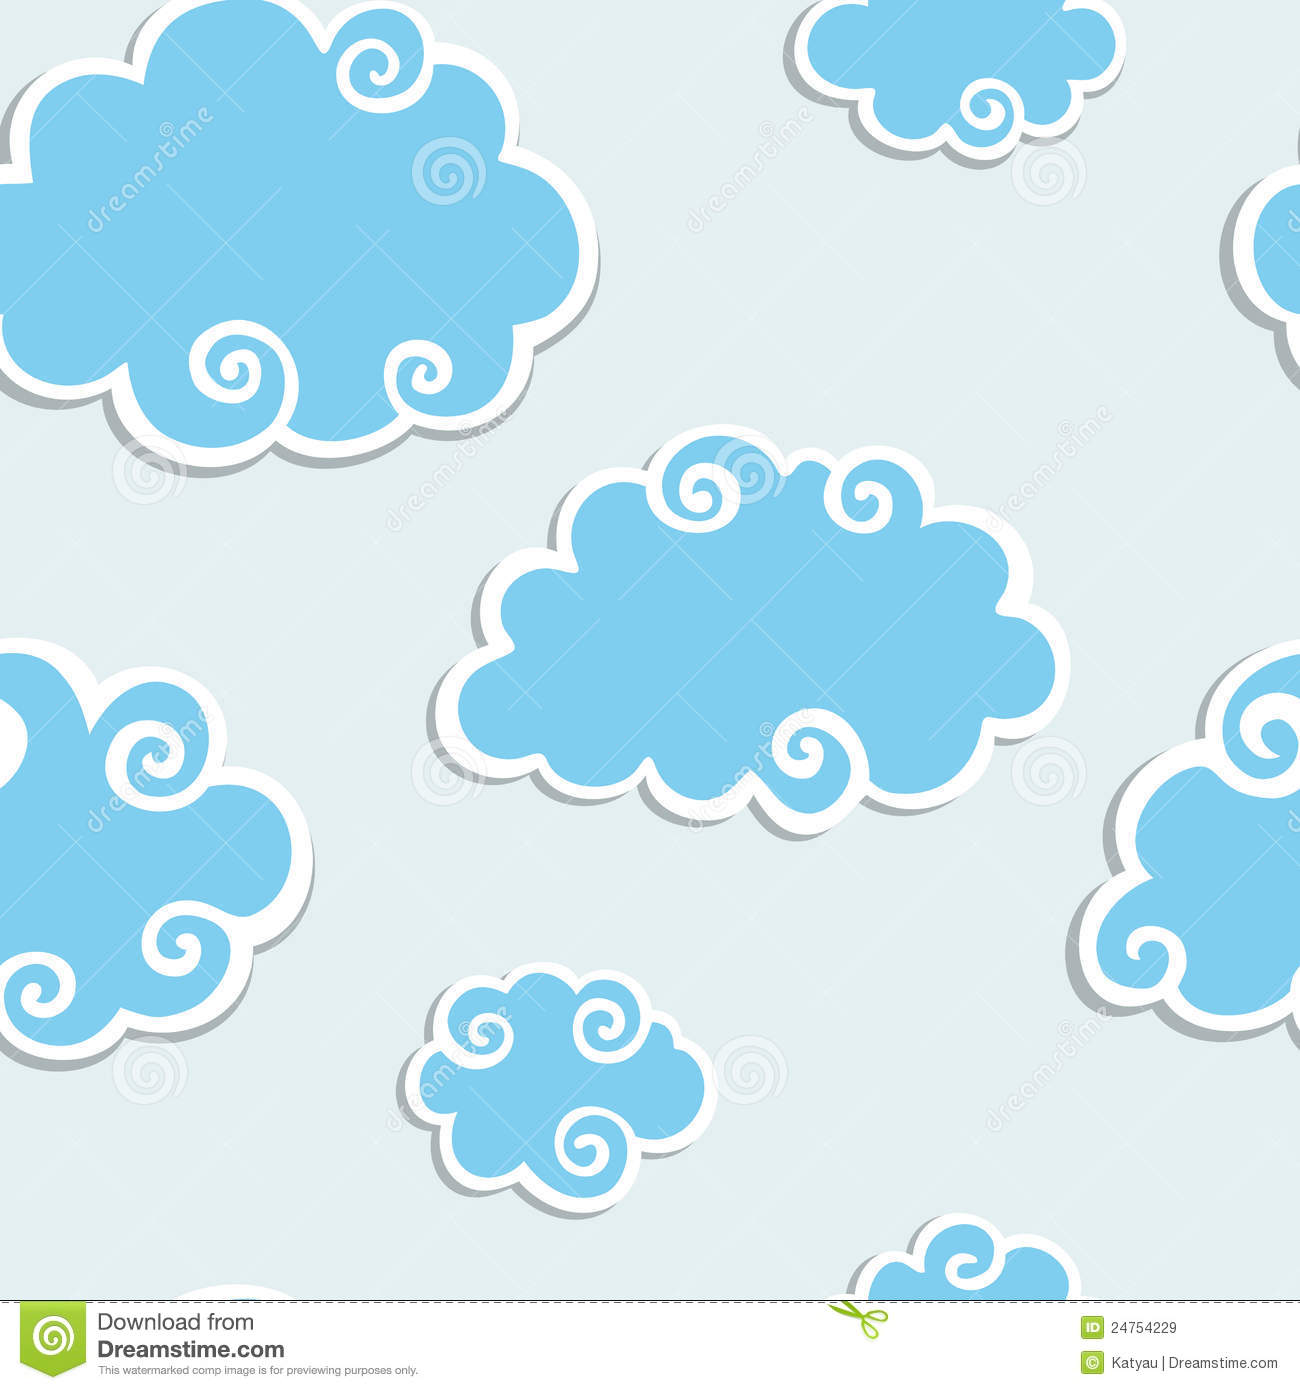 Clouds White Border Seamless Pattern   1300x1390 iWallHD   Wallpaper 1300x1390